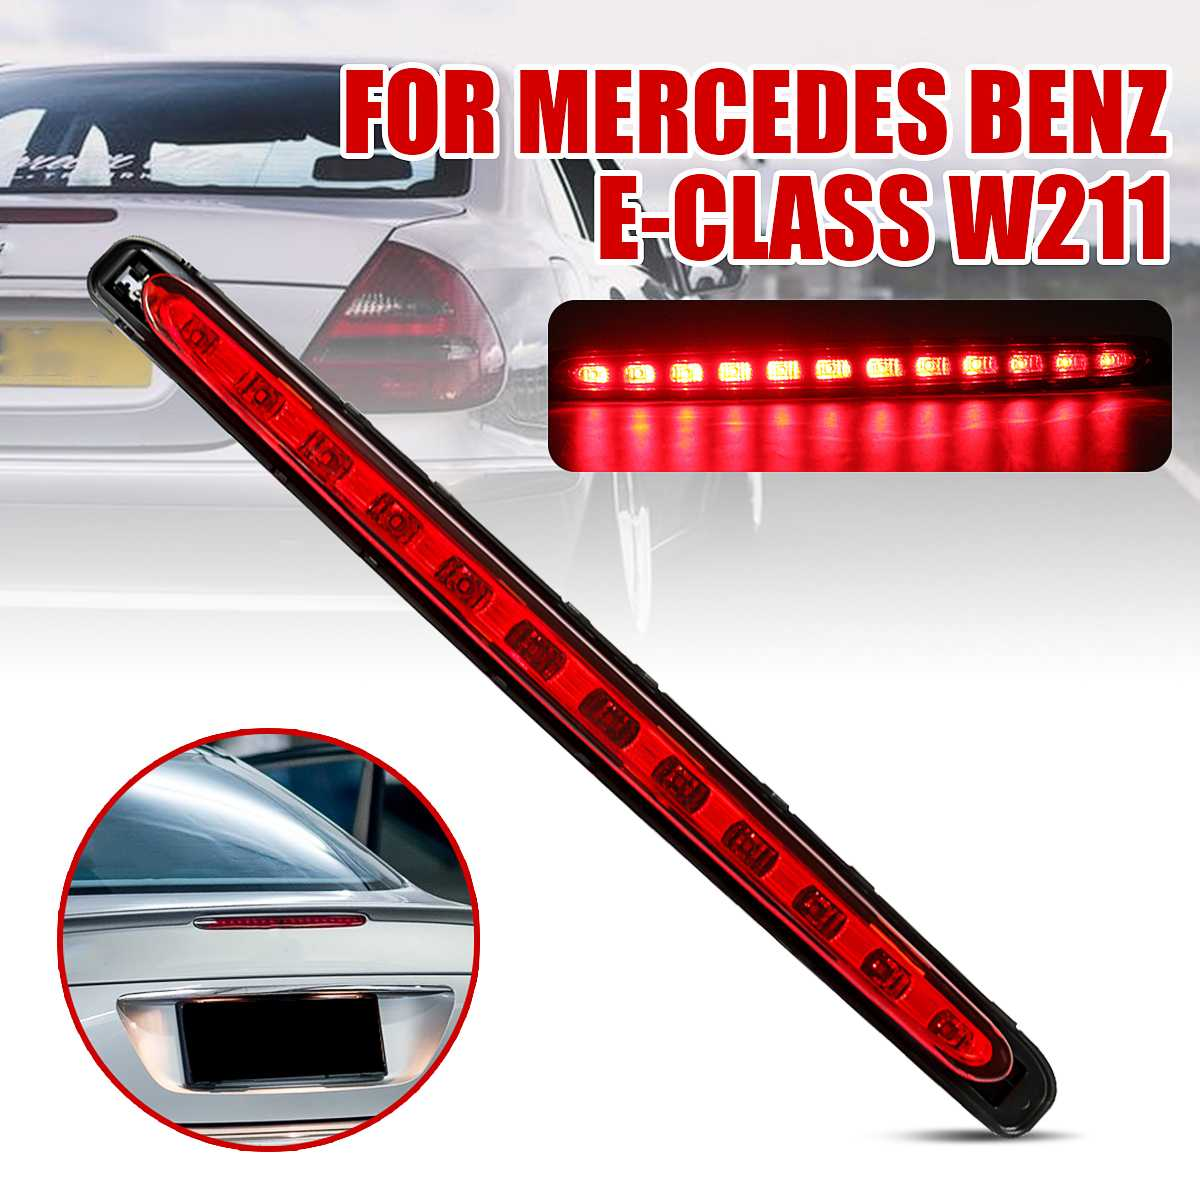 Car LED Tail Light Rear Lamp Height Level Brake Light Stop Lamp Signal 3RD 2118201556 For Mercedes Benz E-Class W211 2003-2009